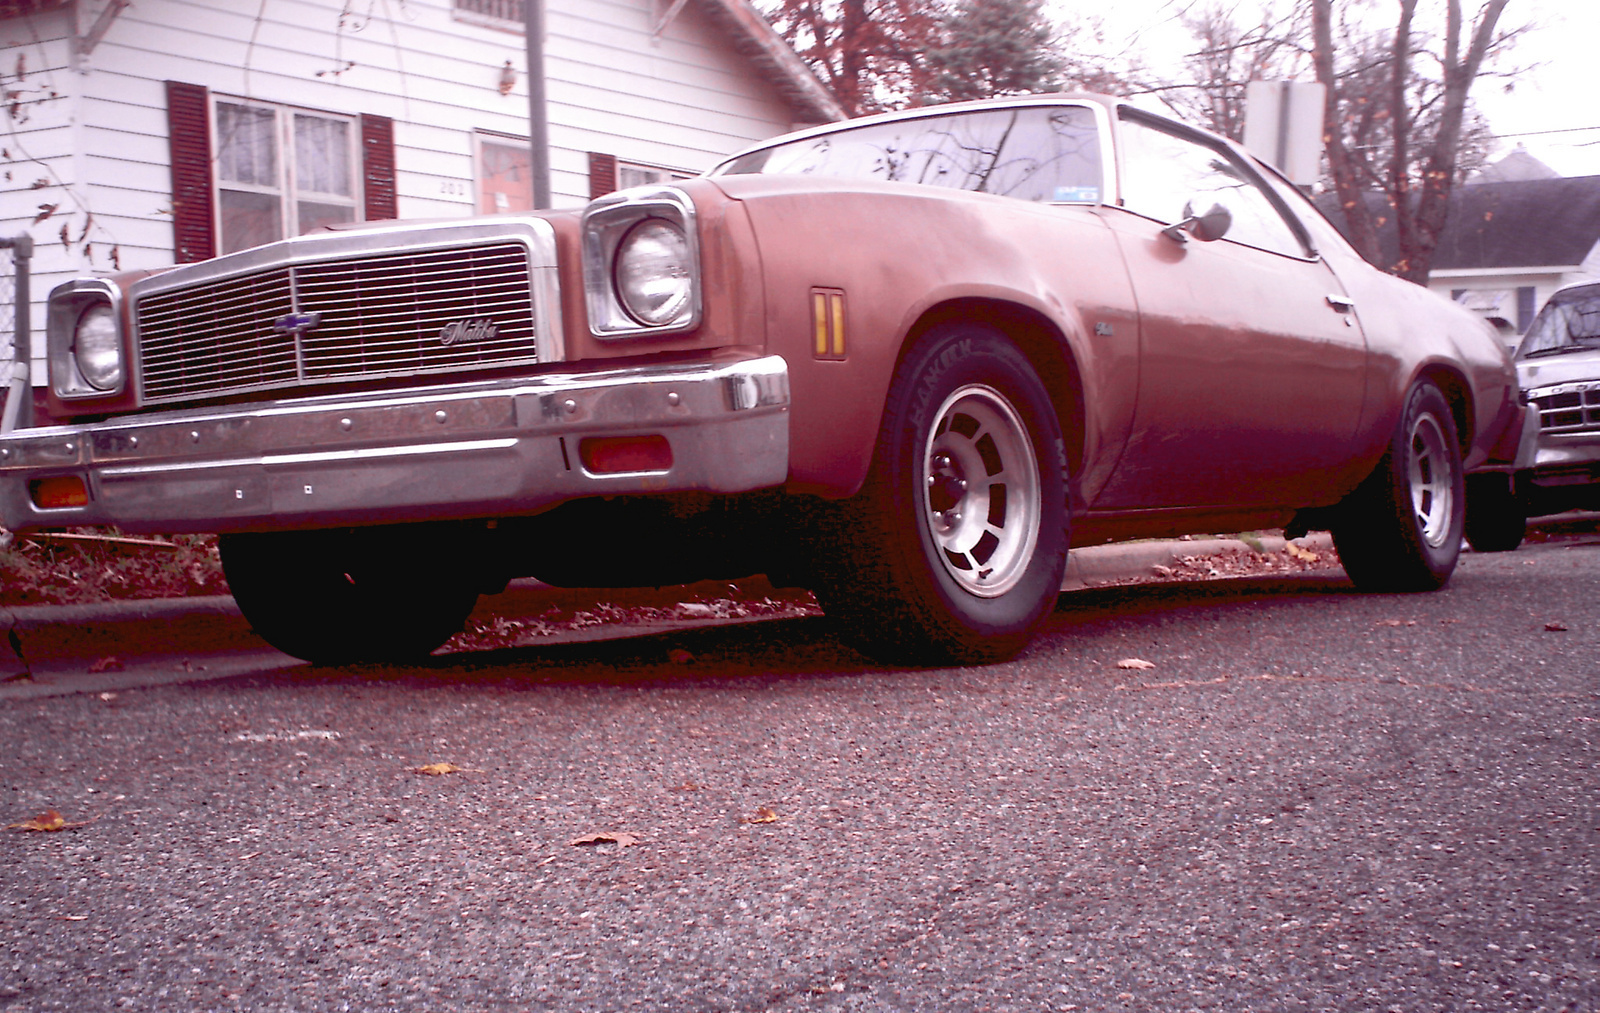 All Chevy 1976 chevy laguna : 1976 Chevrolet Chevelle - Overview - CarGurus